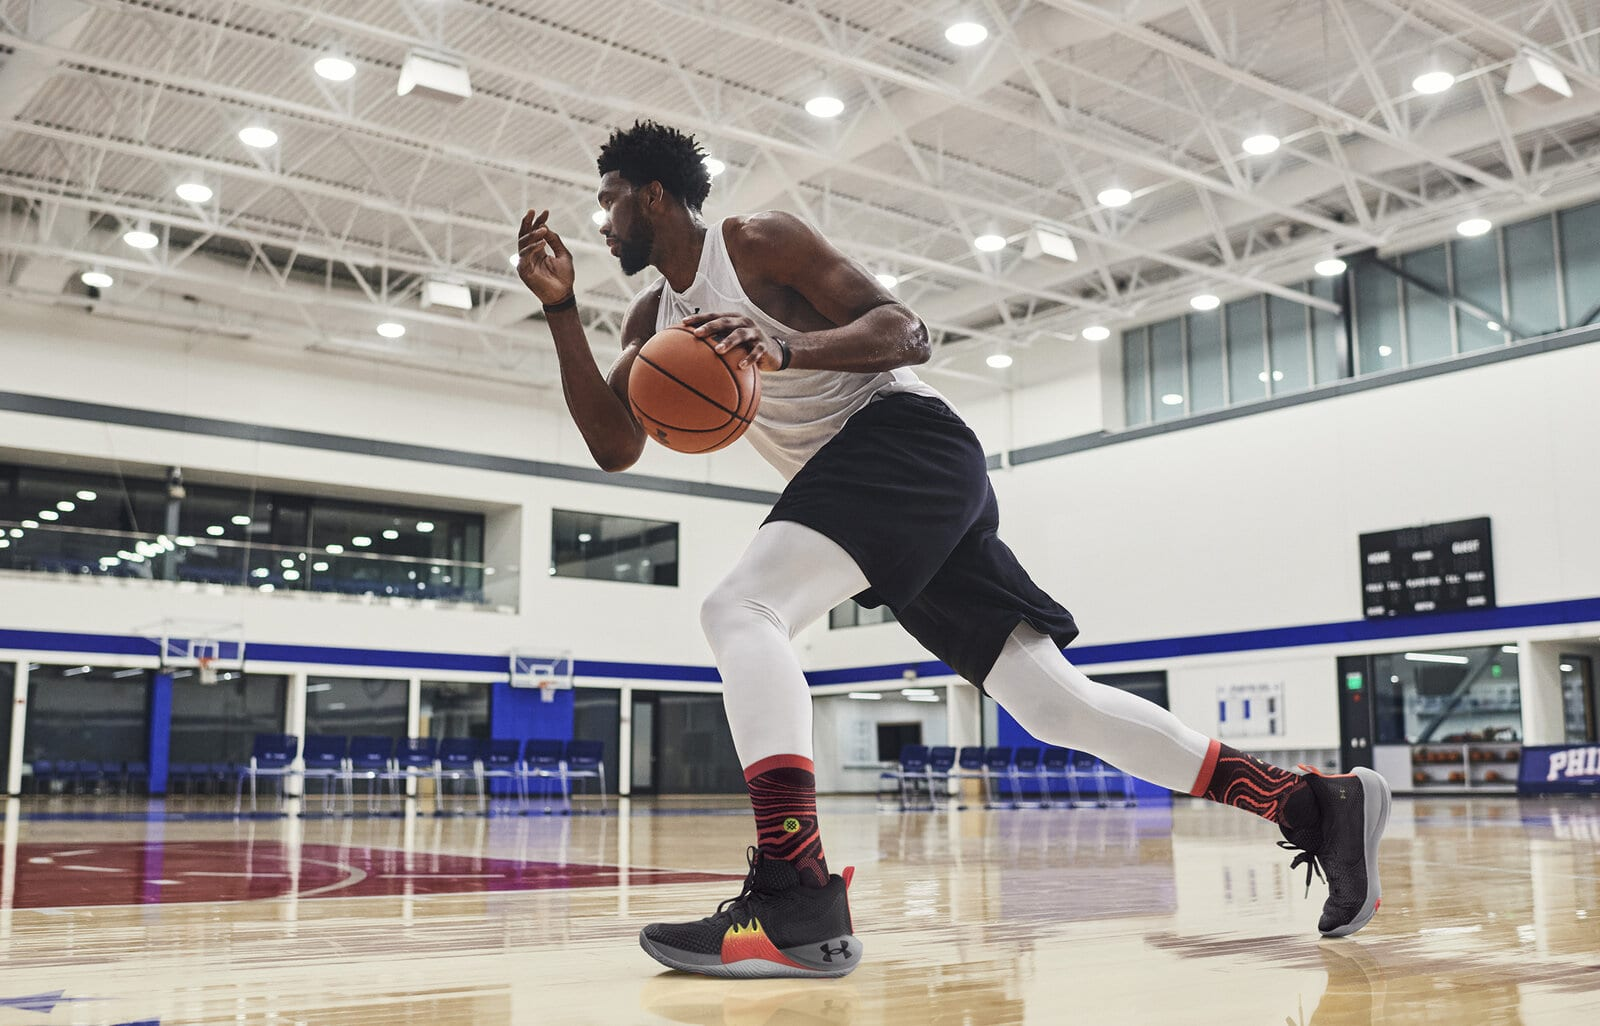 Joel Embiid Debuts the Under Armour 'Embiid One', His First Signature Shoe